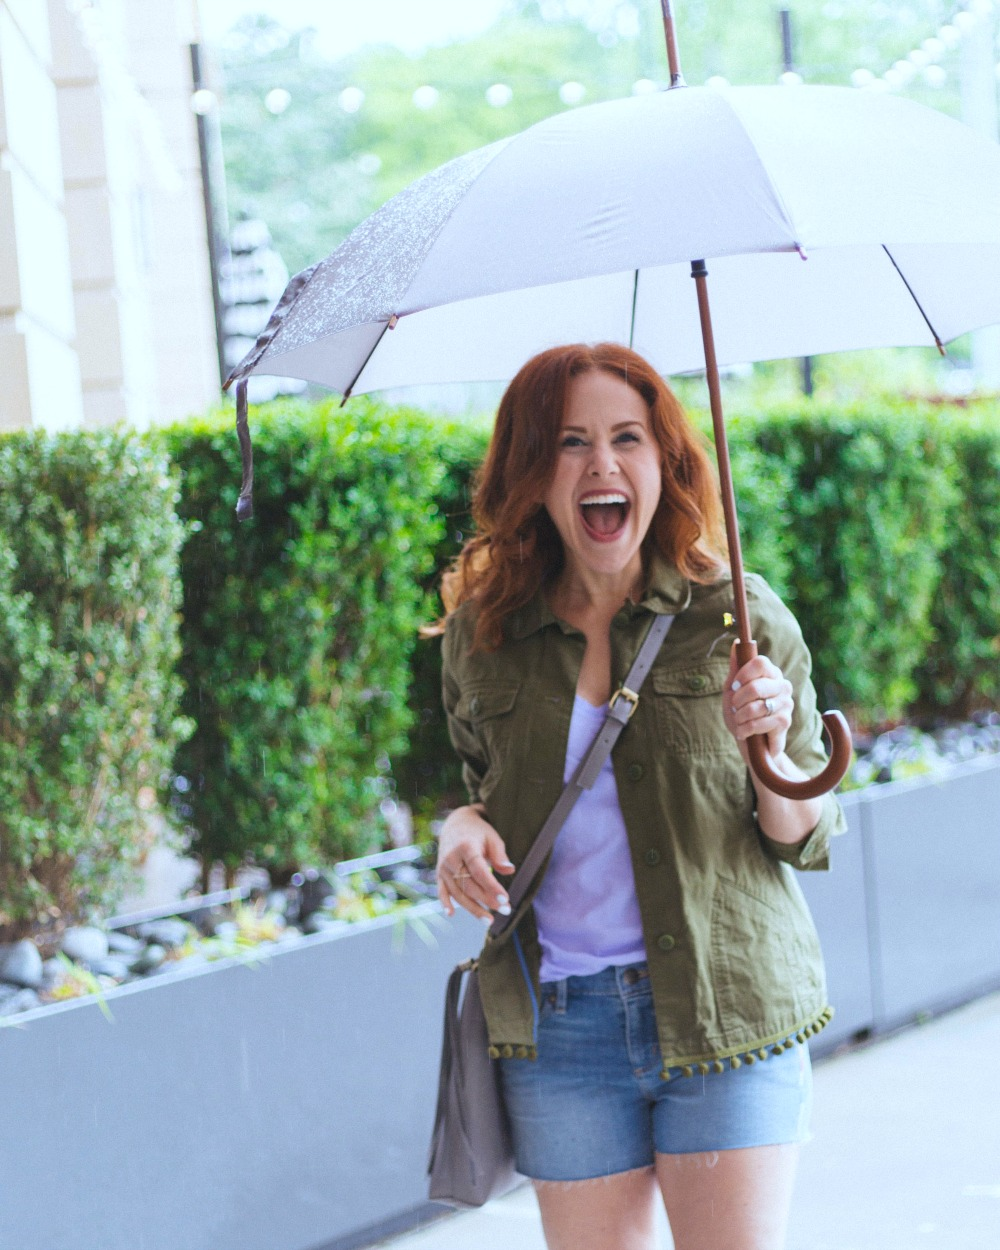 Rainy day smiles // the modern savvy, a florida life & style blog - A Day in the Nashville Rain by popular Florida travel blogger, The Modern Savvy